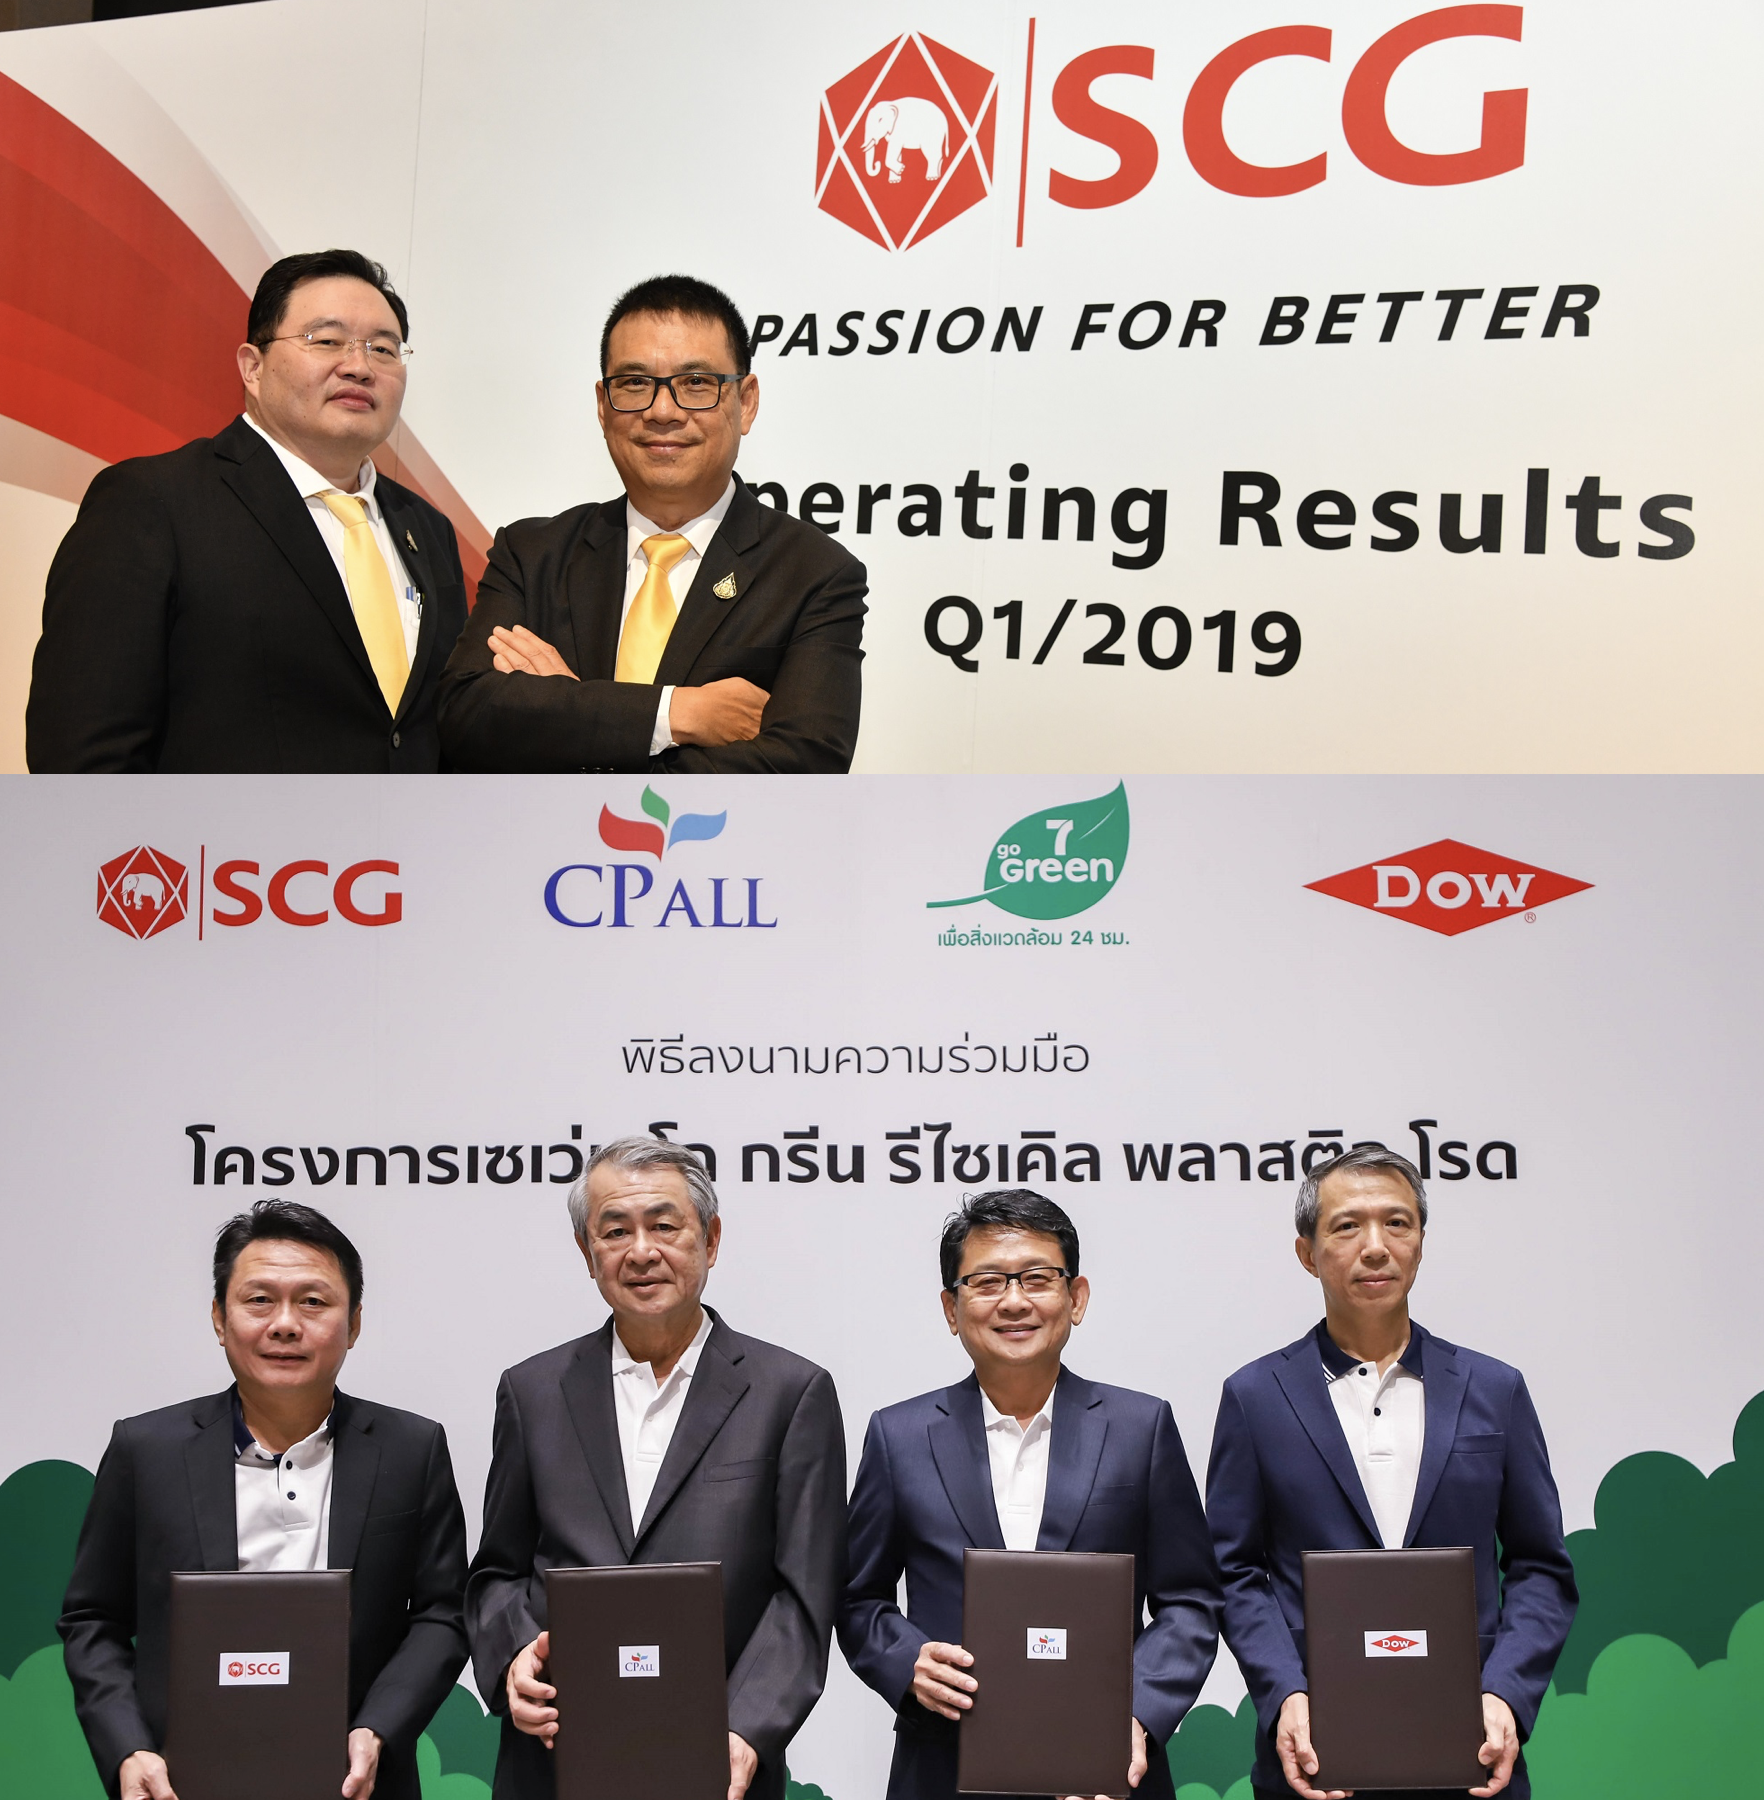 SCG Announces Operating Results for Q1 2019, Builds Stronger Growth